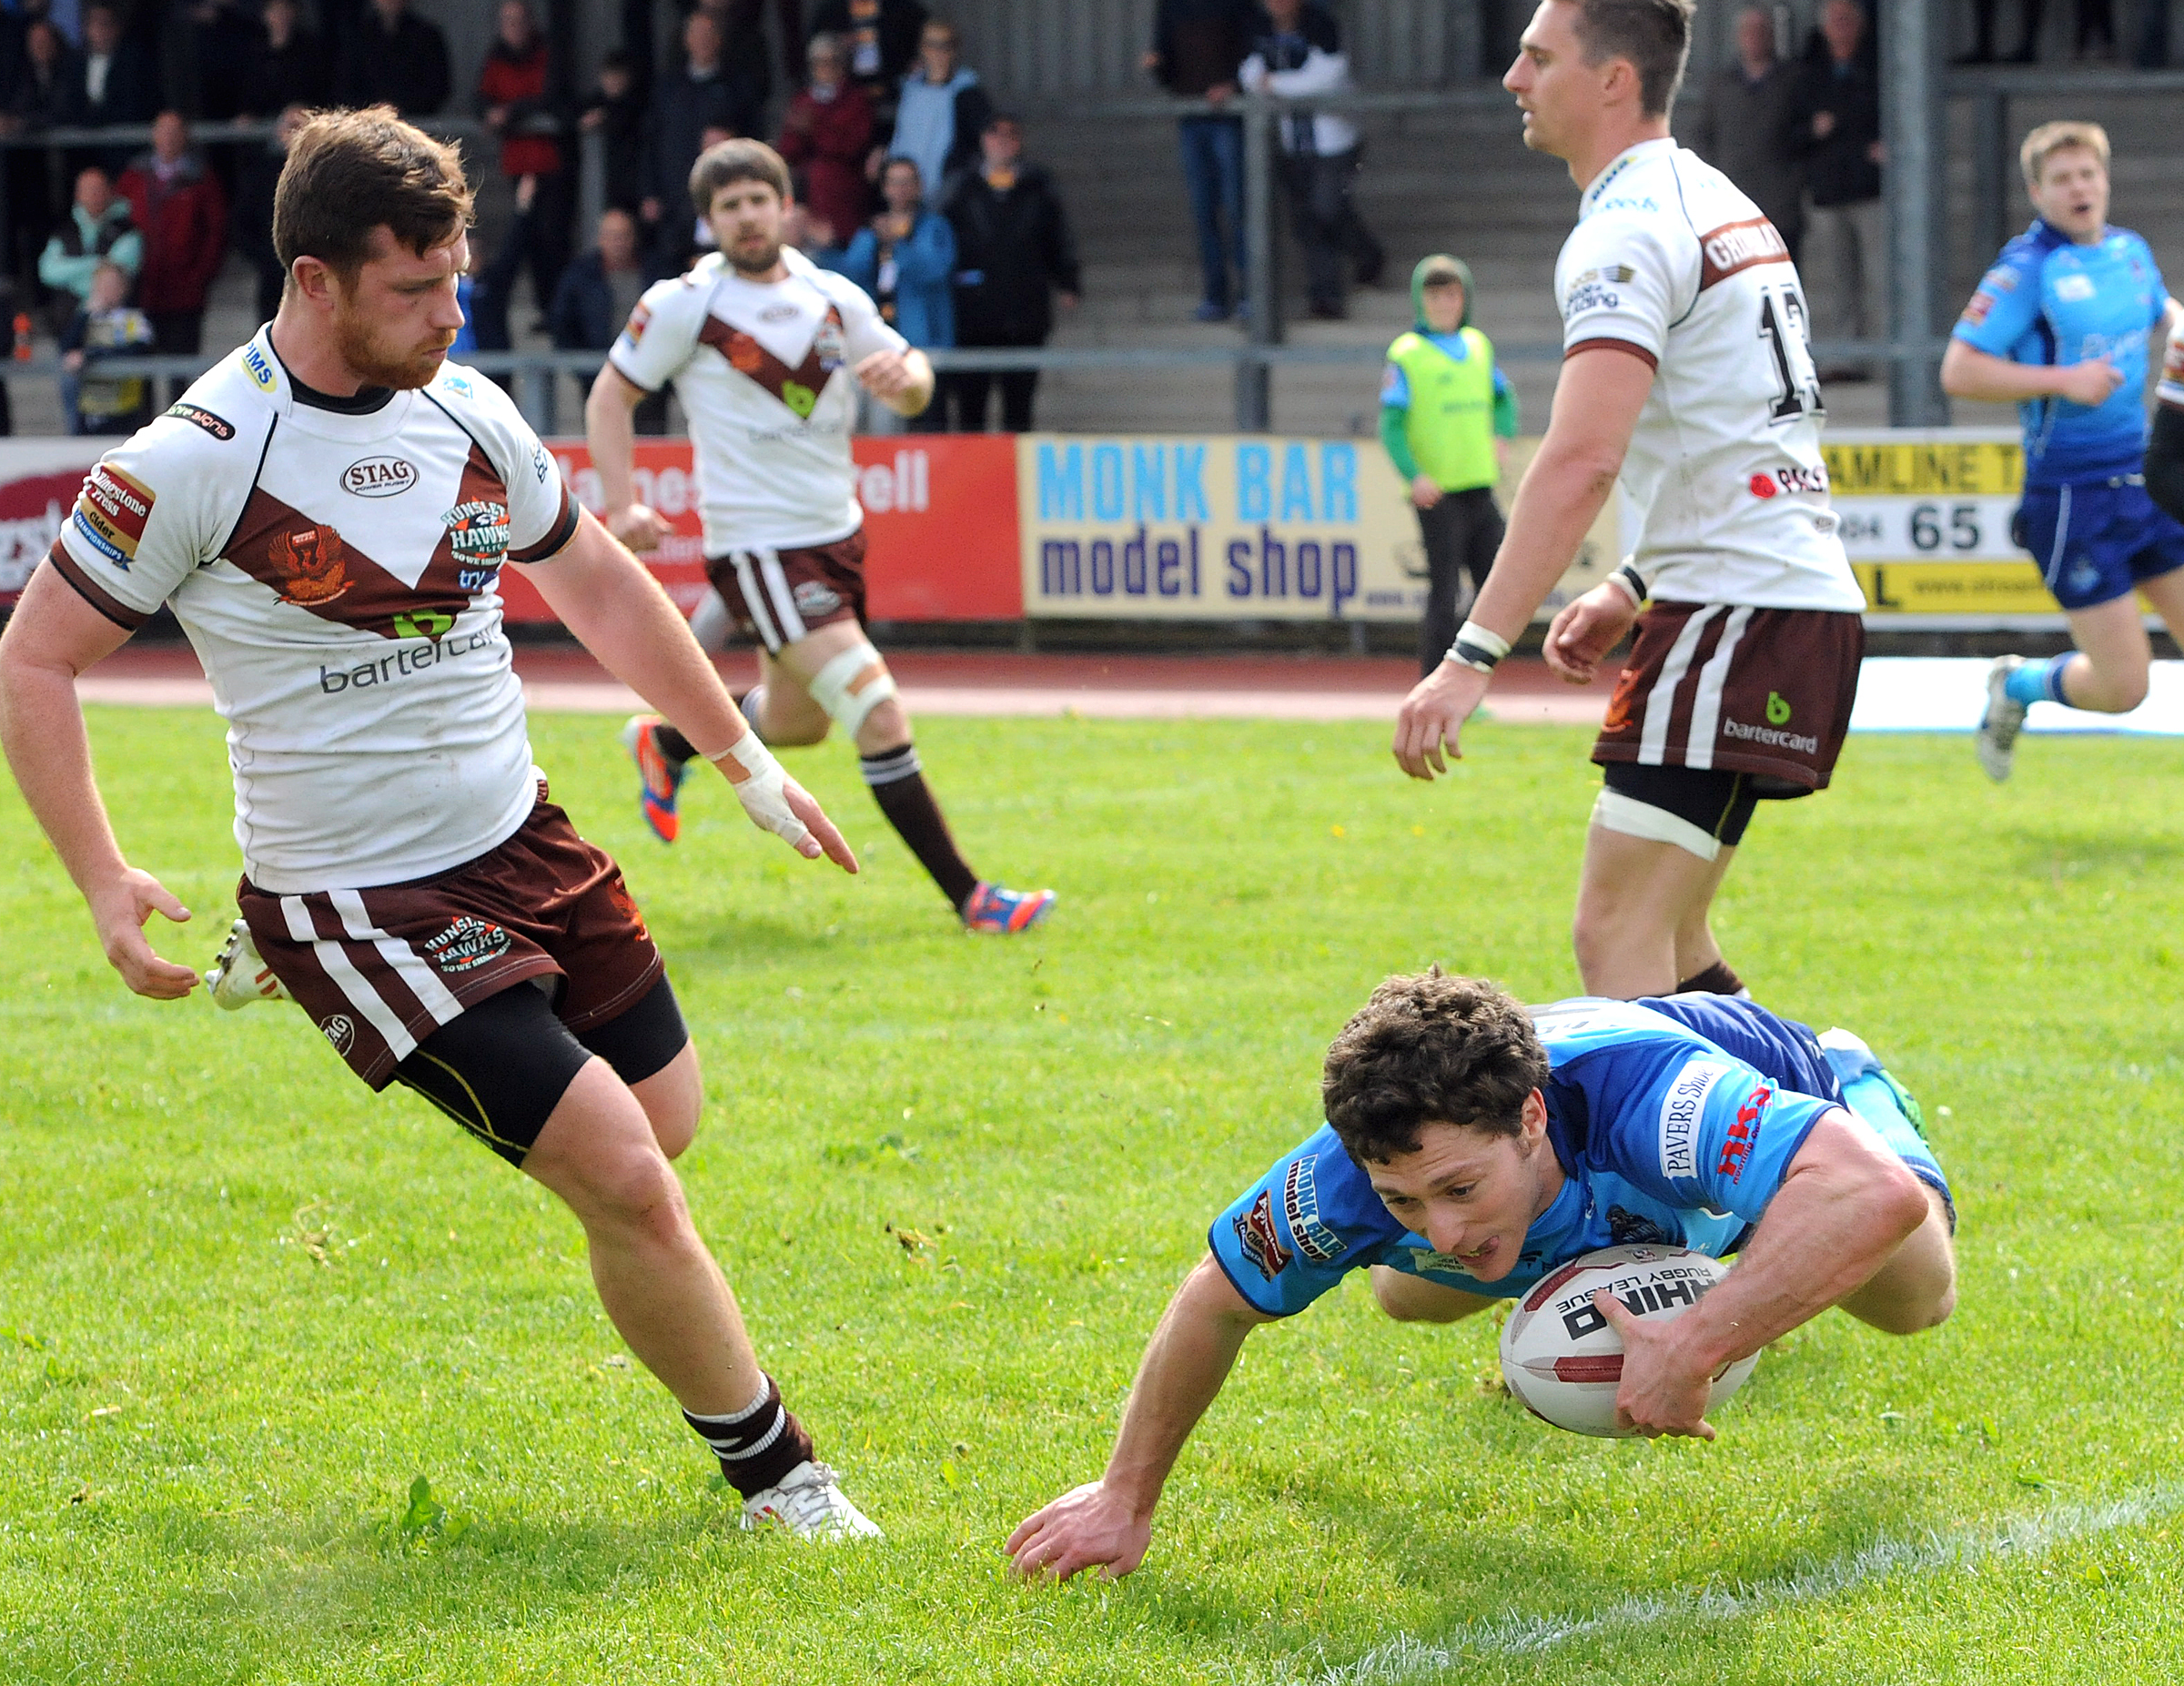 York City Knights 40, Hunslet Hawks 0